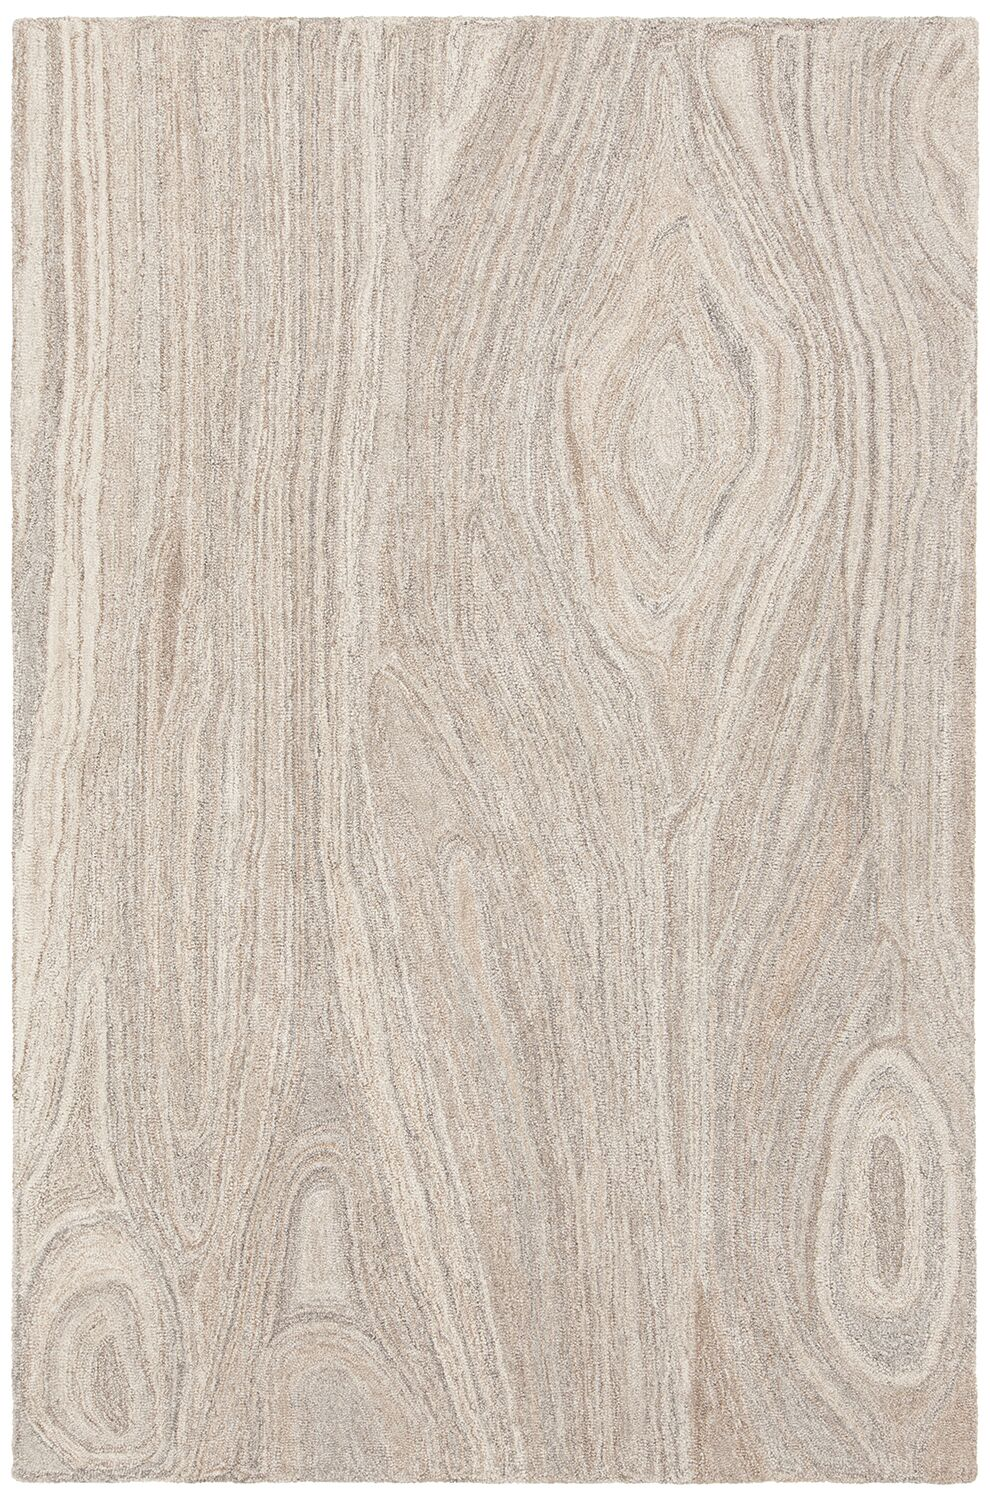 Alhambra Hand-Tufted Tan/Gray Area Rug Rug Size: 7'9